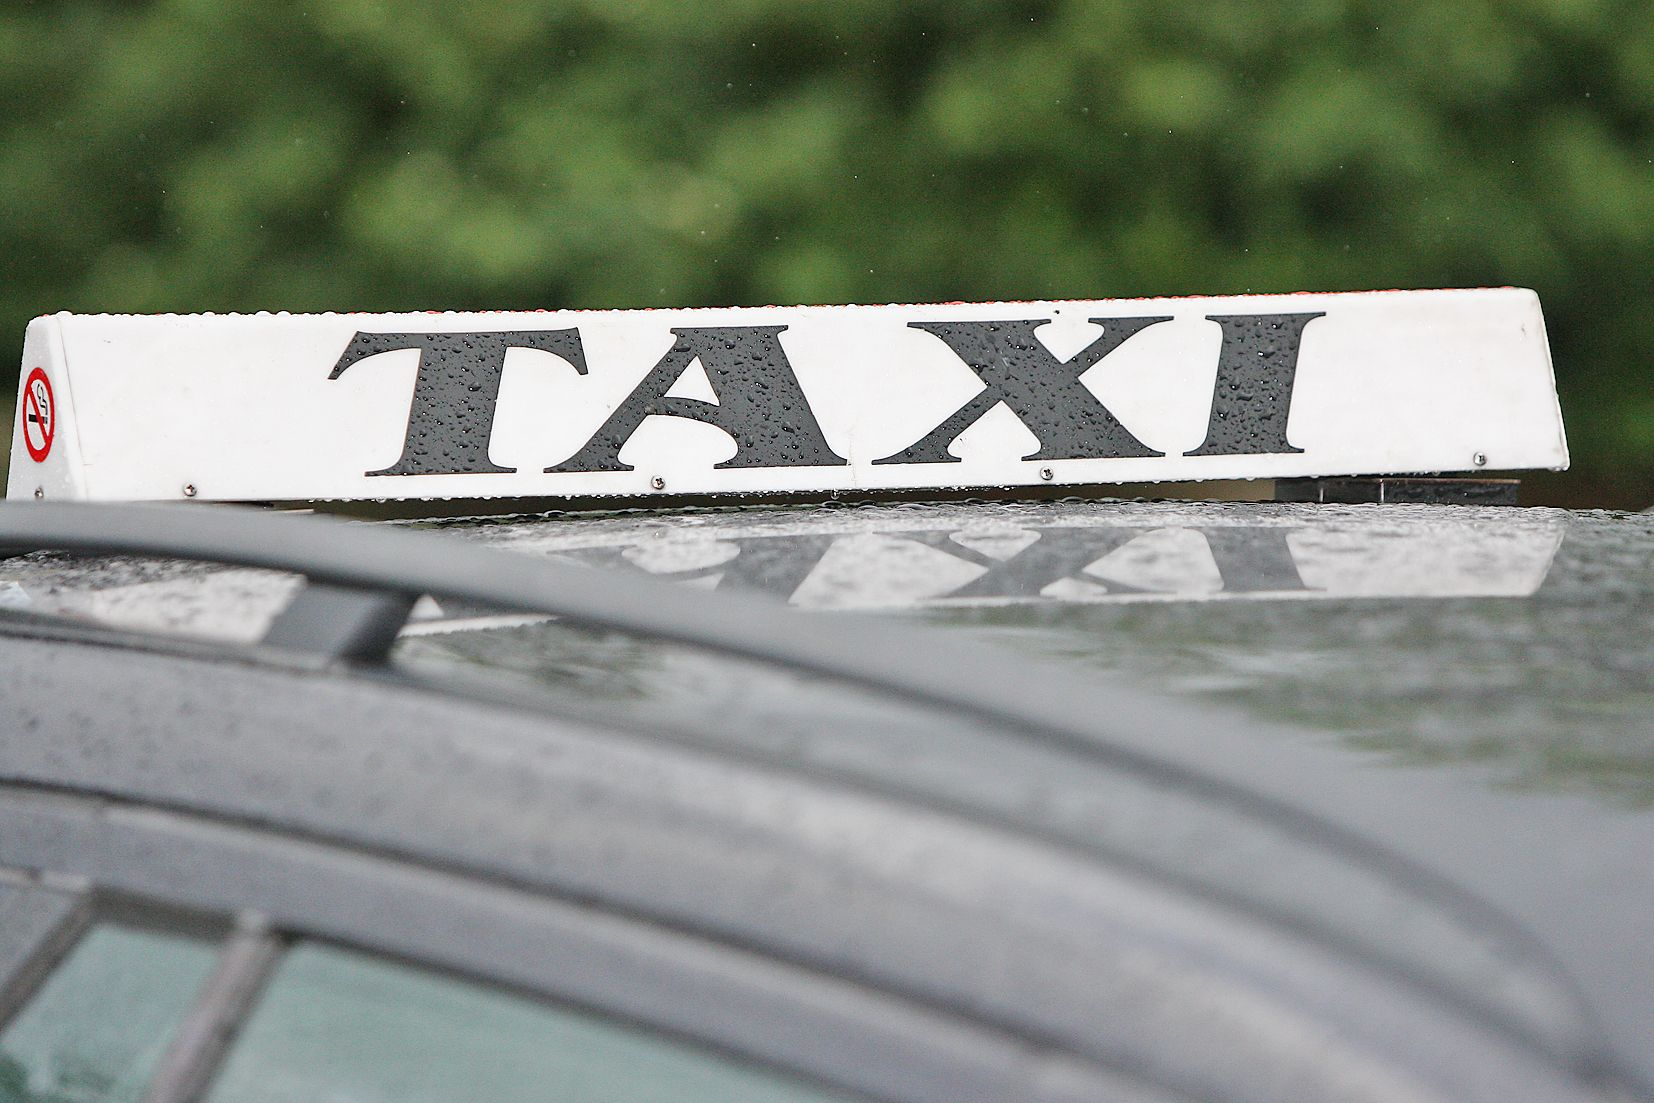 FINANCIAL ASSISTANCE: The local taxi service is in crisis